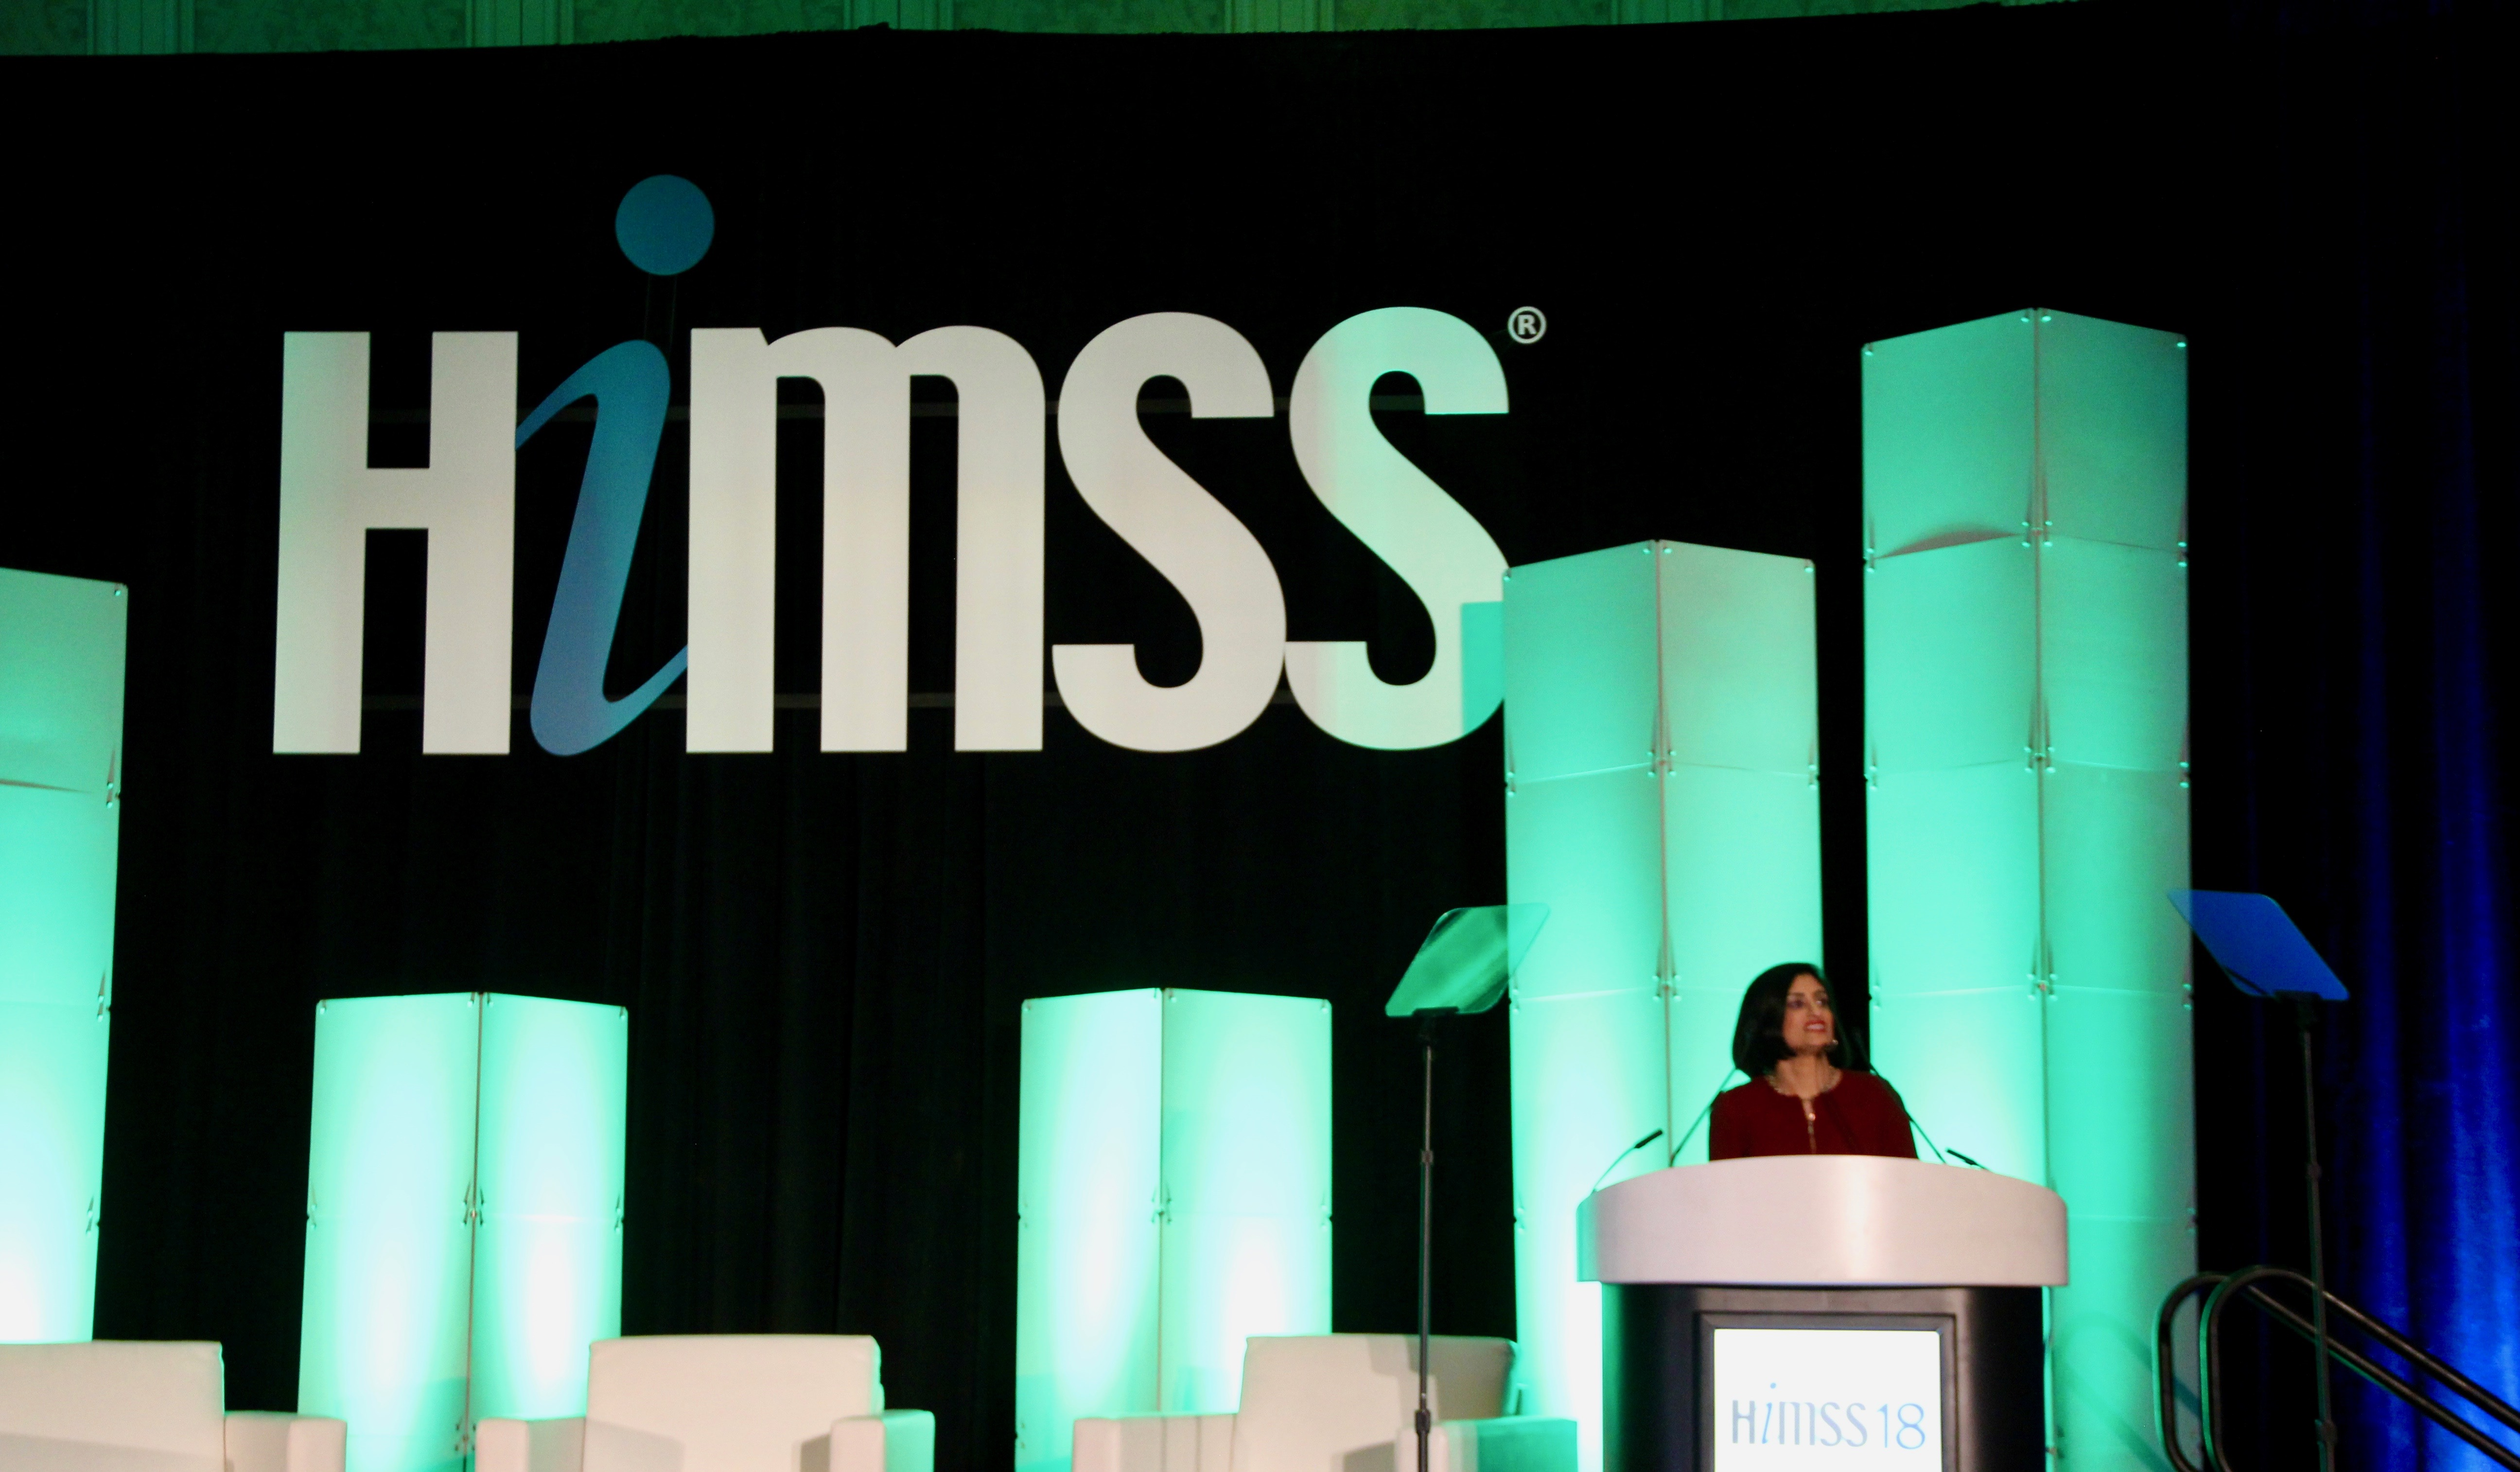 CMS Administrator Seema Verma speaking at HIMSS18